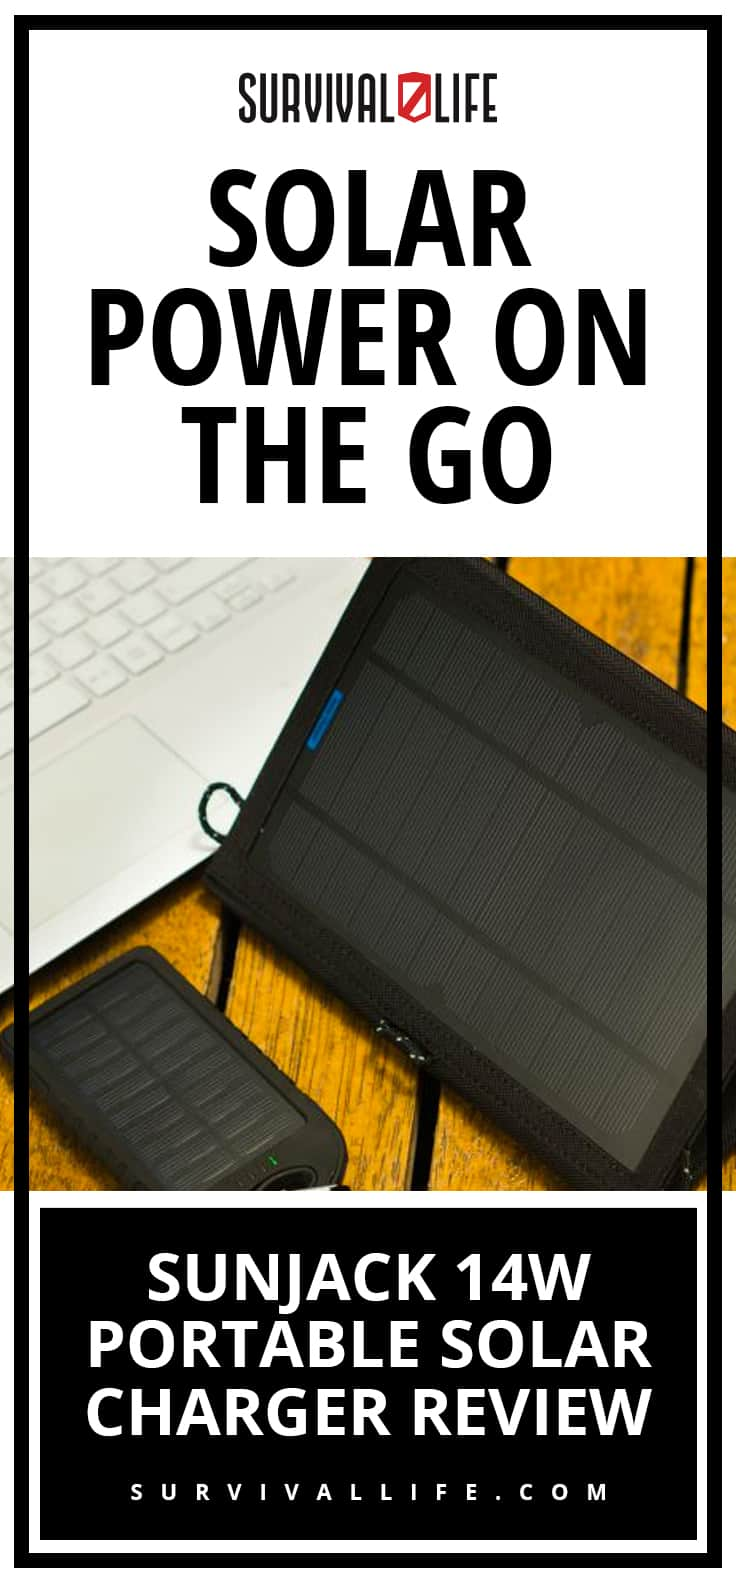 Sunjack 14W Portable Solar Charger Review | Solar Power On The Go